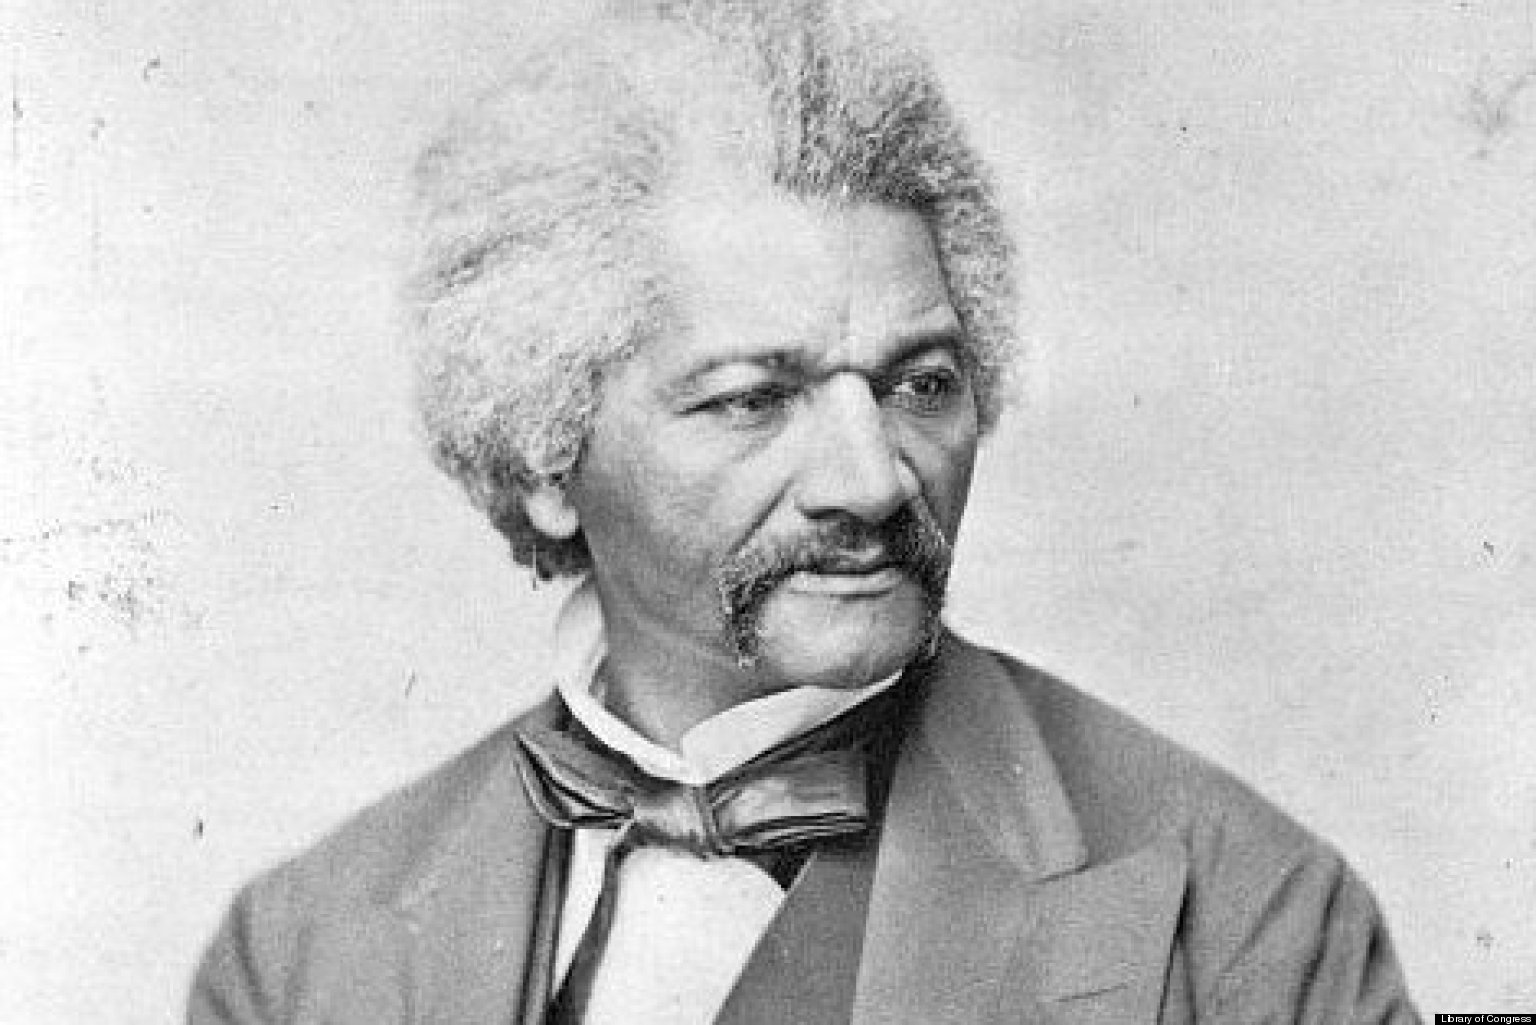 fredrick douglass Find great deals on ebay for frederick douglass and slavery shop with confidence.